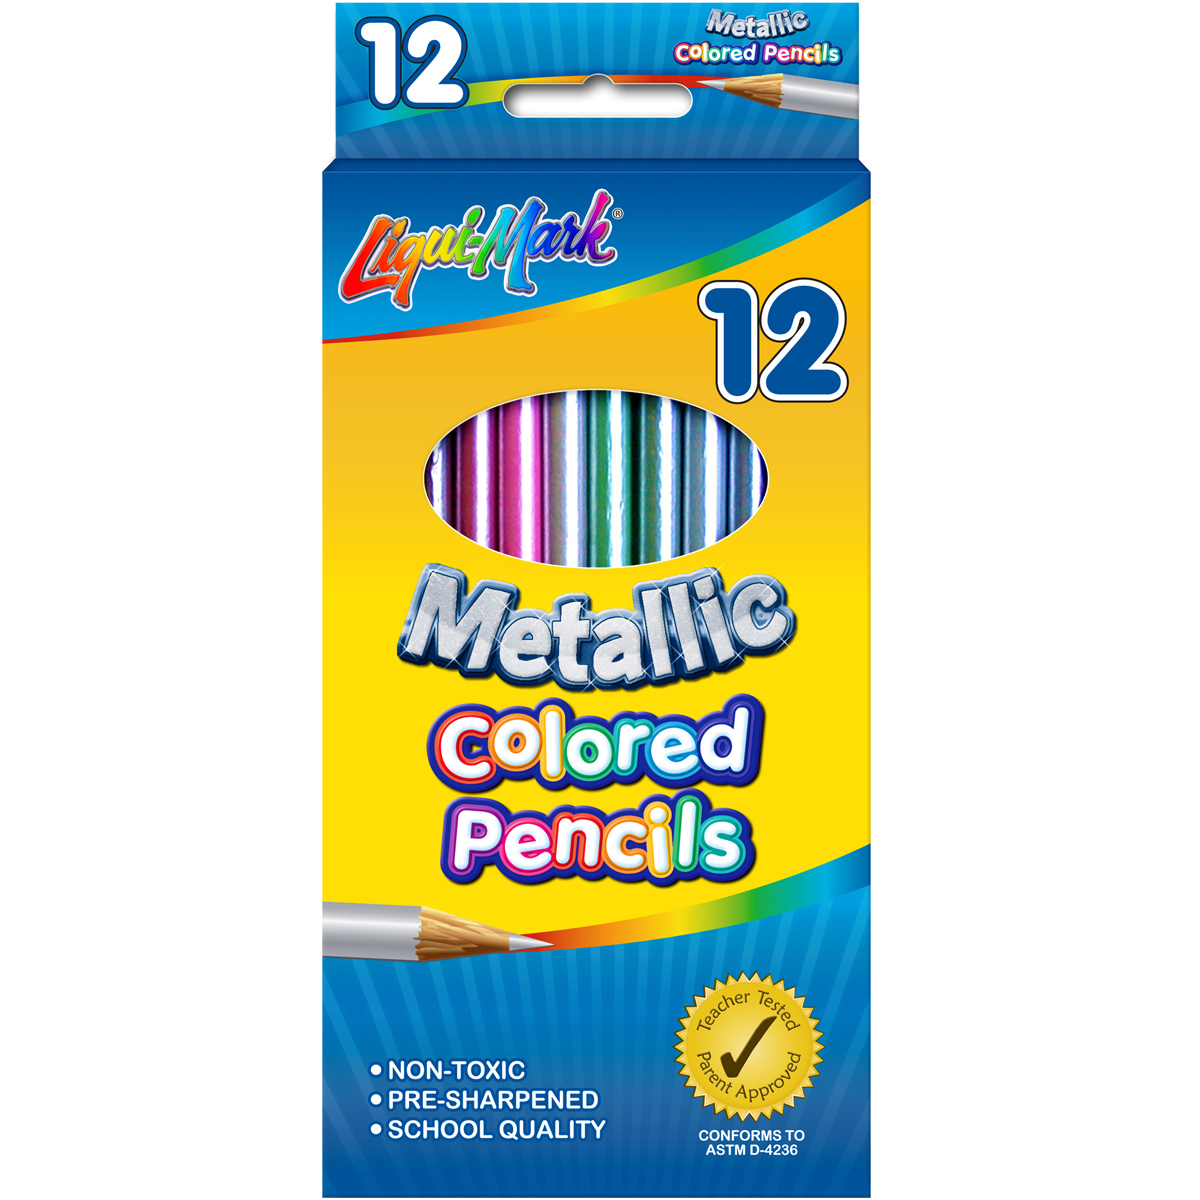 Liqui-Mark Colored Pencils 12/Pkg-Metallic